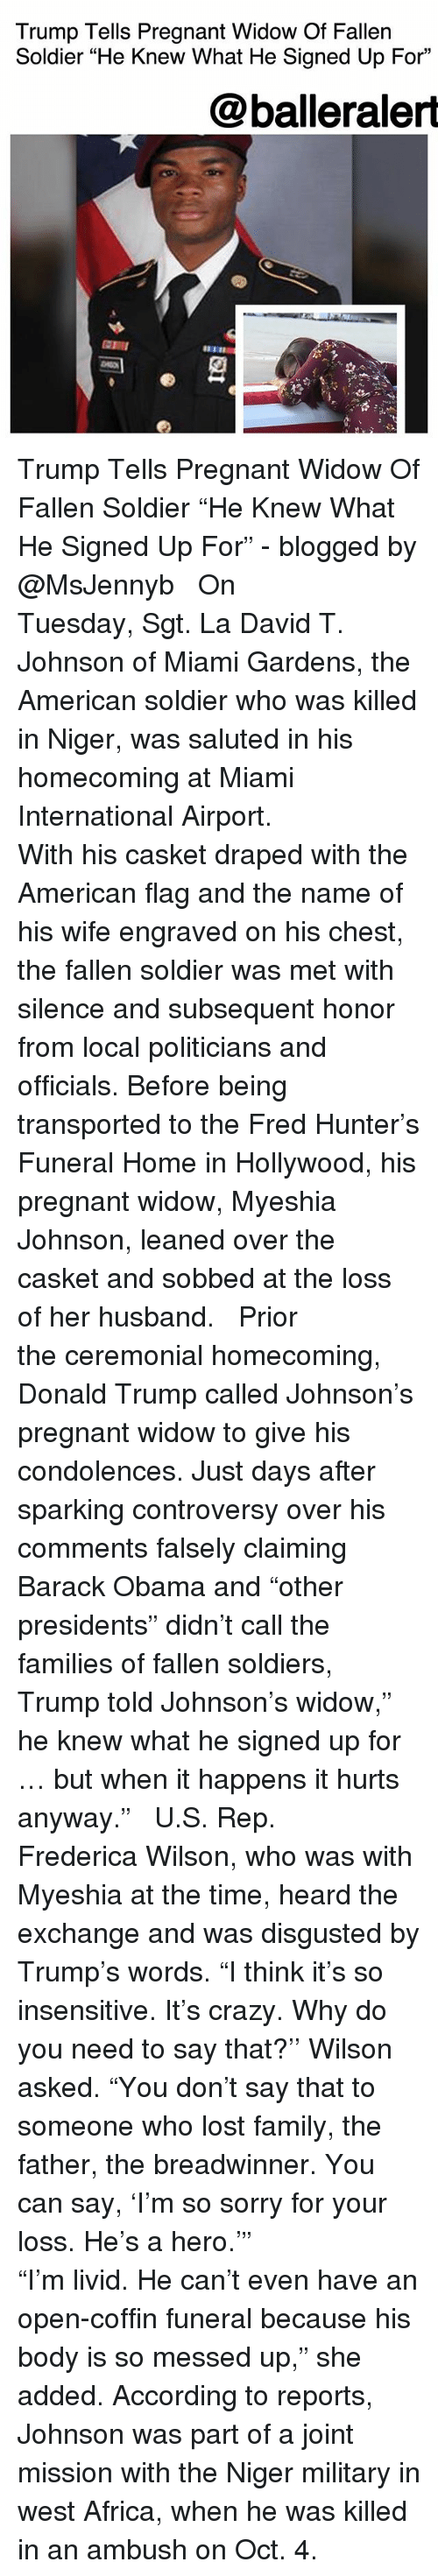 "Africa, Crazy, and Donald Trump: Trump Tells Pregnant Widow Of Fallen  Soldier ""He Knew What He Signed Up For""  @balleraler  臣111  2 Trump Tells Pregnant Widow Of Fallen Soldier ""He Knew What He Signed Up For"" - blogged by @MsJennyb ⠀⠀⠀⠀⠀⠀⠀ ⠀⠀⠀⠀⠀⠀⠀ On Tuesday, Sgt. La David T. Johnson of Miami Gardens, the American soldier who was killed in Niger, was saluted in his homecoming at Miami International Airport. ⠀⠀⠀⠀⠀⠀⠀ ⠀⠀⠀⠀⠀⠀⠀ With his casket draped with the American flag and the name of his wife engraved on his chest, the fallen soldier was met with silence and subsequent honor from local politicians and officials. Before being transported to the Fred Hunter's Funeral Home in Hollywood, his pregnant widow, Myeshia Johnson, leaned over the casket and sobbed at the loss of her husband. ⠀⠀⠀⠀⠀⠀⠀ ⠀⠀⠀⠀⠀⠀⠀ Prior the ceremonial homecoming, Donald Trump called Johnson's pregnant widow to give his condolences. Just days after sparking controversy over his comments falsely claiming Barack Obama and ""other presidents"" didn't call the families of fallen soldiers, Trump told Johnson's widow,"" he knew what he signed up for … but when it happens it hurts anyway."" ⠀⠀⠀⠀⠀⠀⠀ ⠀⠀⠀⠀⠀⠀⠀ U.S. Rep. Frederica Wilson, who was with Myeshia at the time, heard the exchange and was disgusted by Trump's words. ""I think it's so insensitive. It's crazy. Why do you need to say that?'' Wilson asked. ""You don't say that to someone who lost family, the father, the breadwinner. You can say, 'I'm so sorry for your loss. He's a hero.'"" ⠀⠀⠀⠀⠀⠀⠀ ⠀⠀⠀⠀⠀⠀⠀ ""I'm livid. He can't even have an open-coffin funeral because his body is so messed up,"" she added. According to reports, Johnson was part of a joint mission with the Niger military in west Africa, when he was killed in an ambush on Oct. 4."